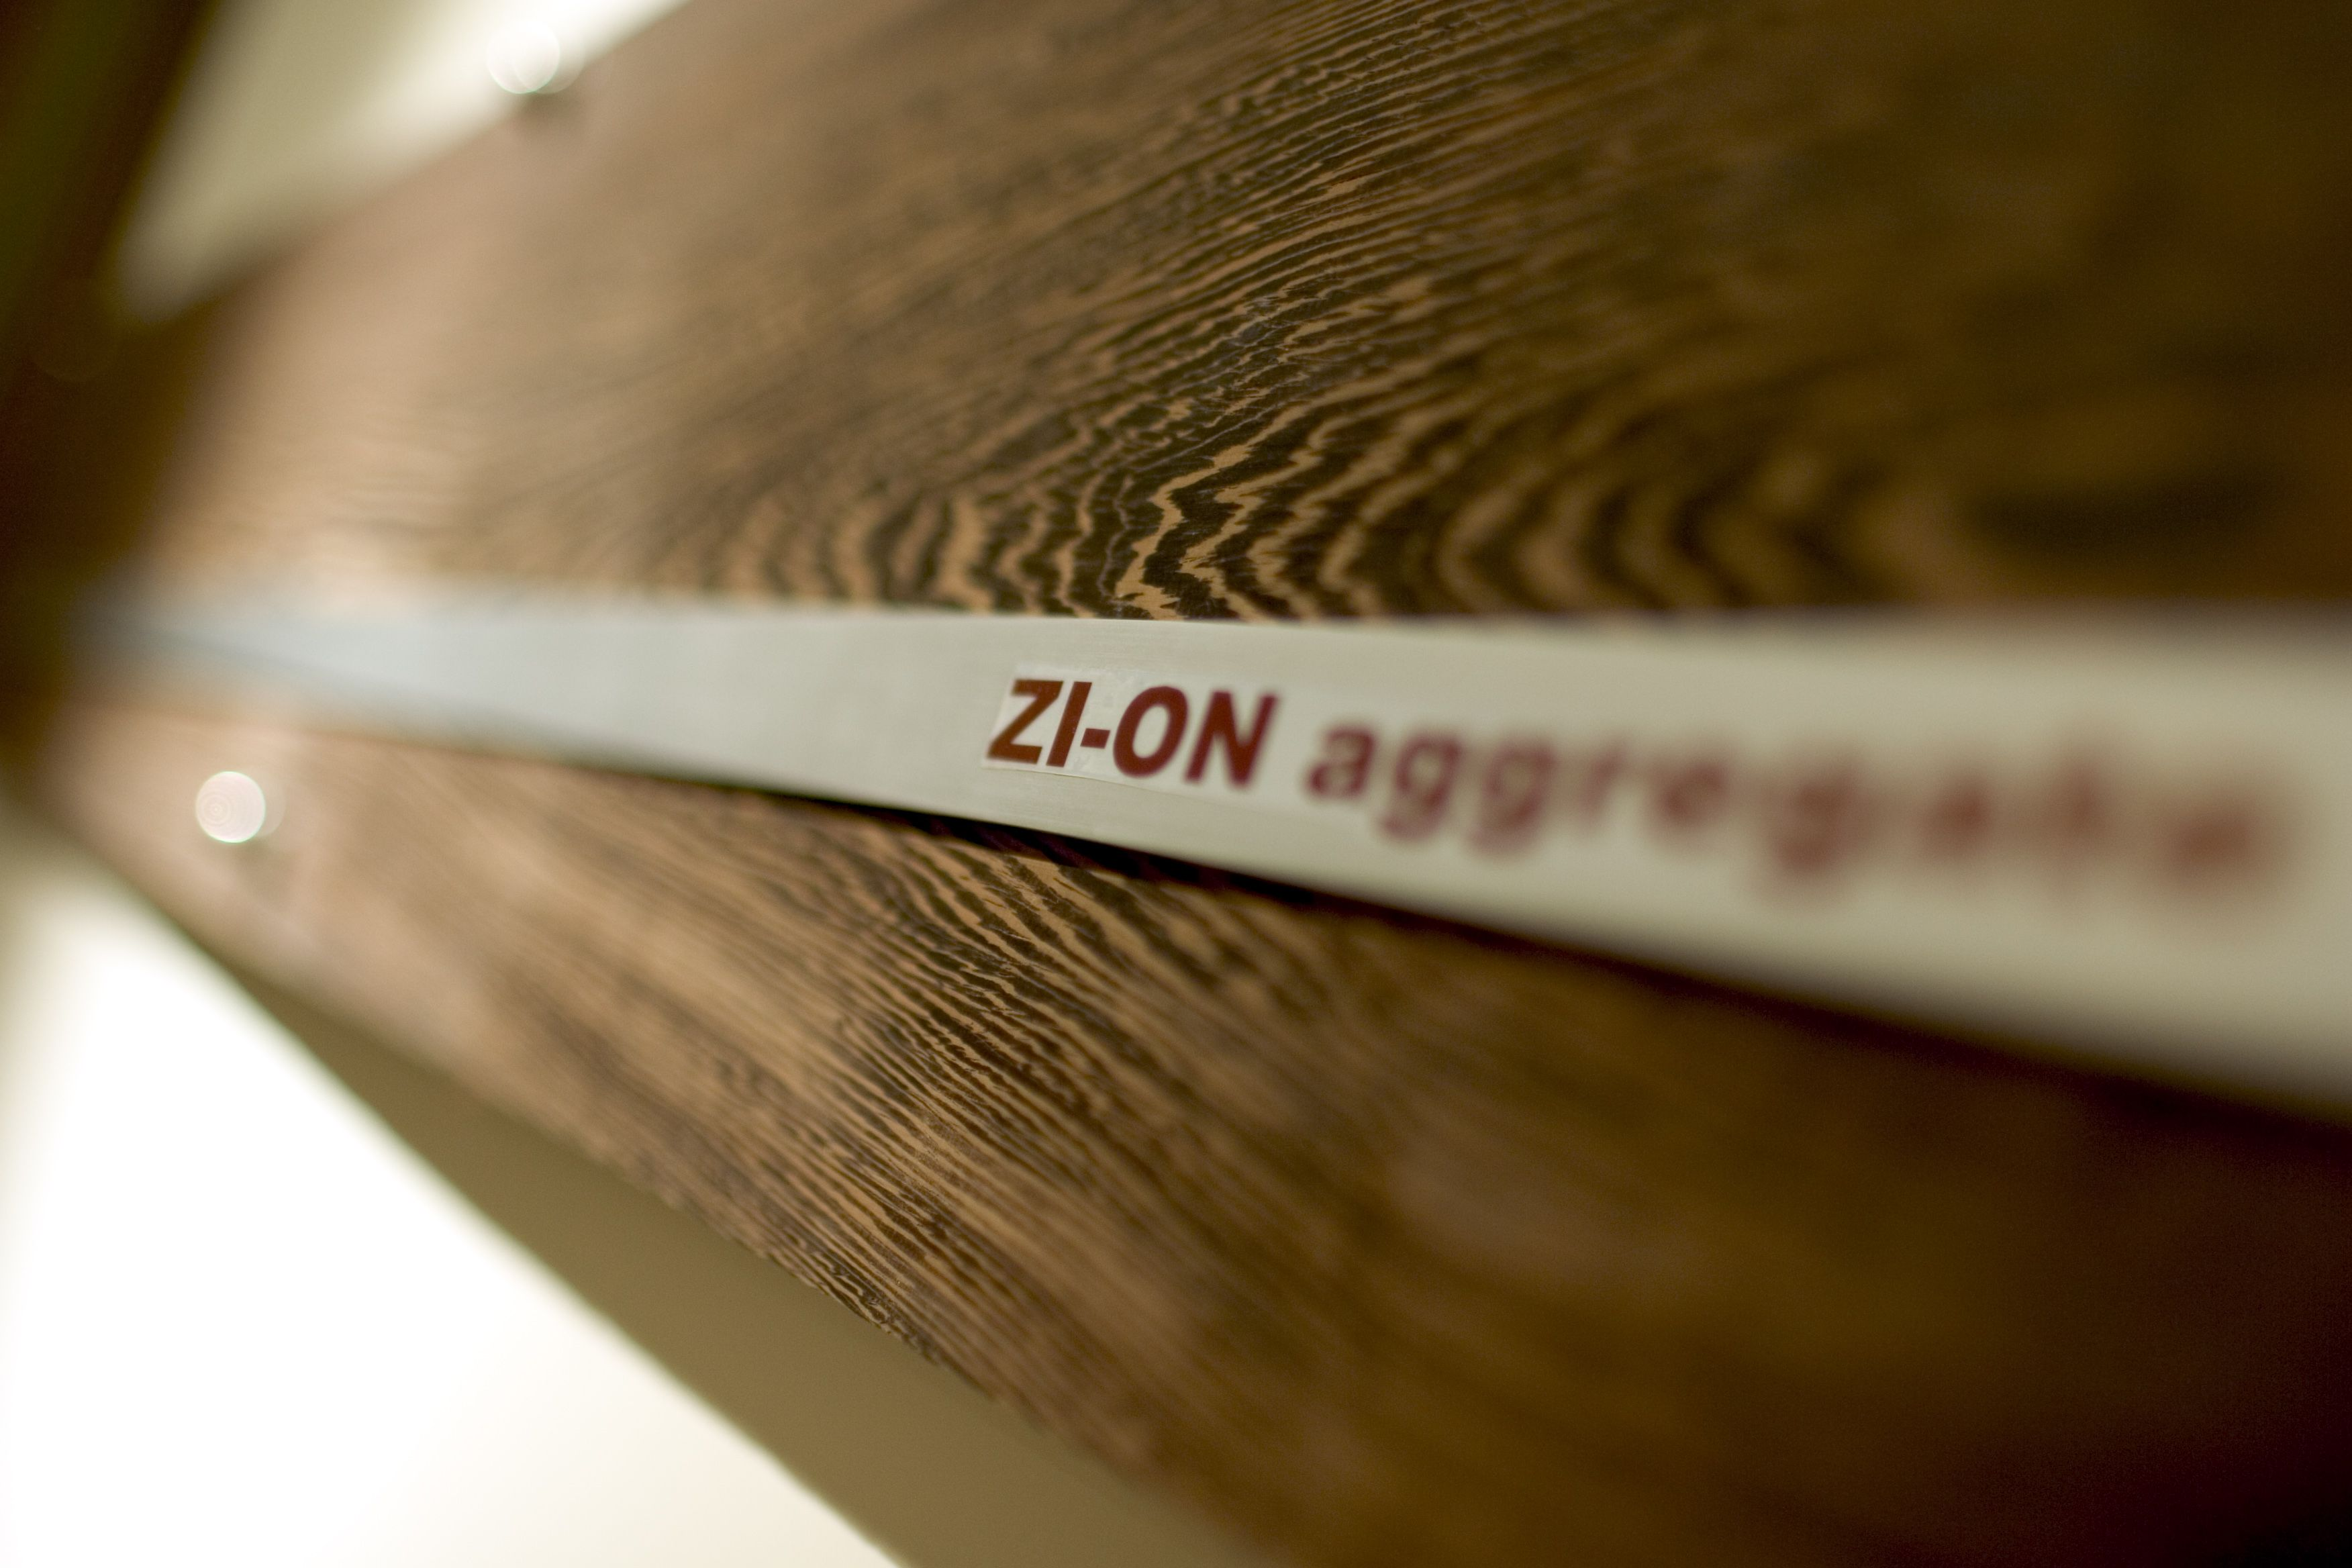 zi-on aggregate